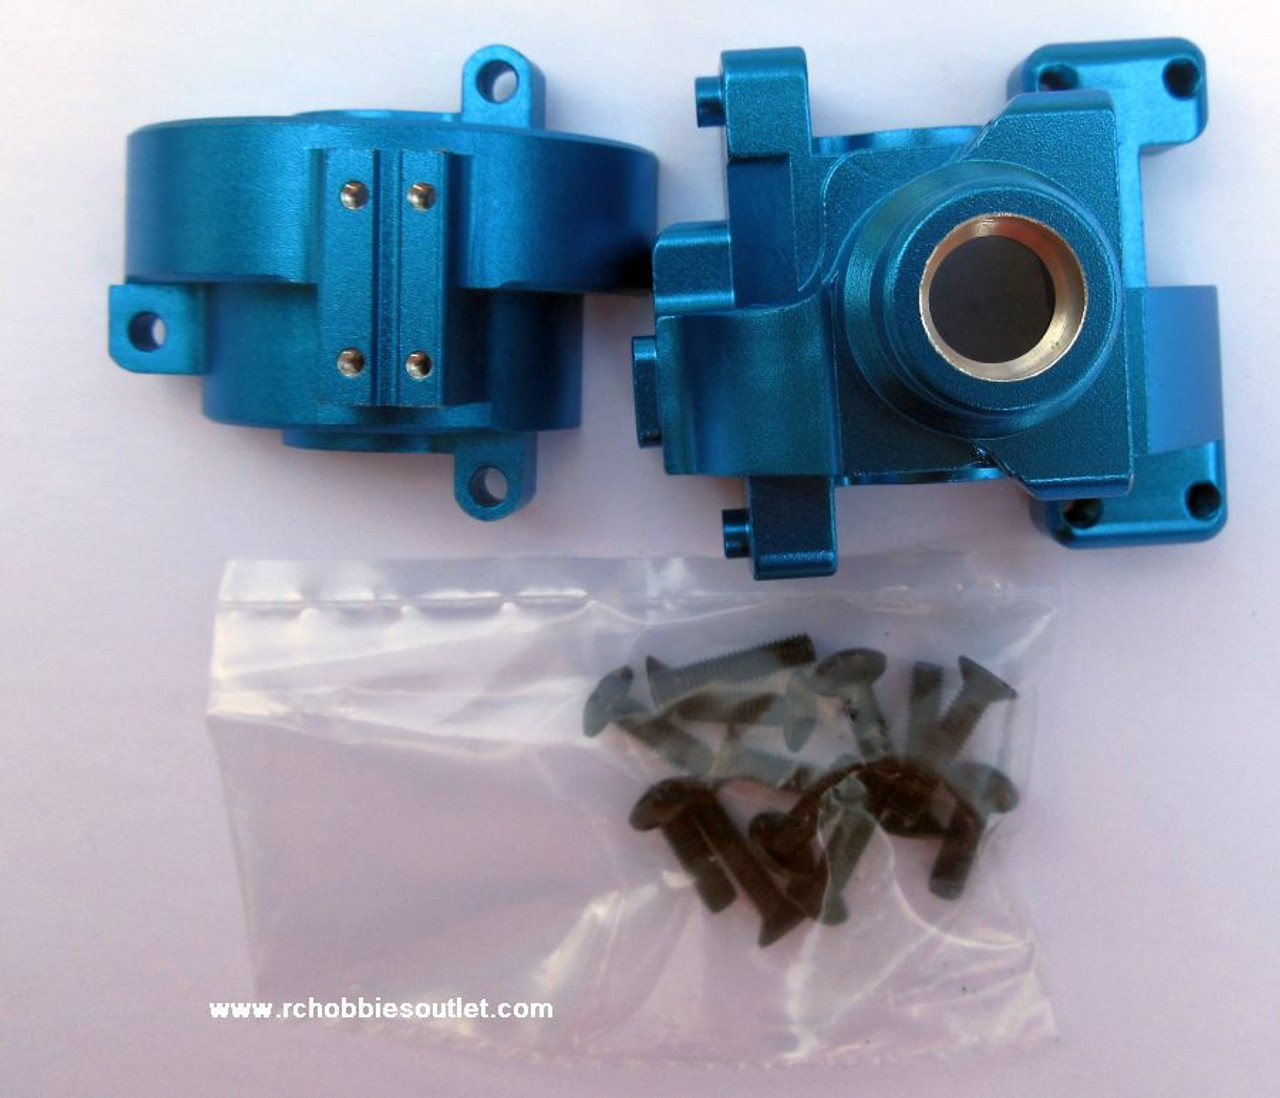 102075 Blue 1/10 Diff Gear Box Upgrade Part for HSP Redcat